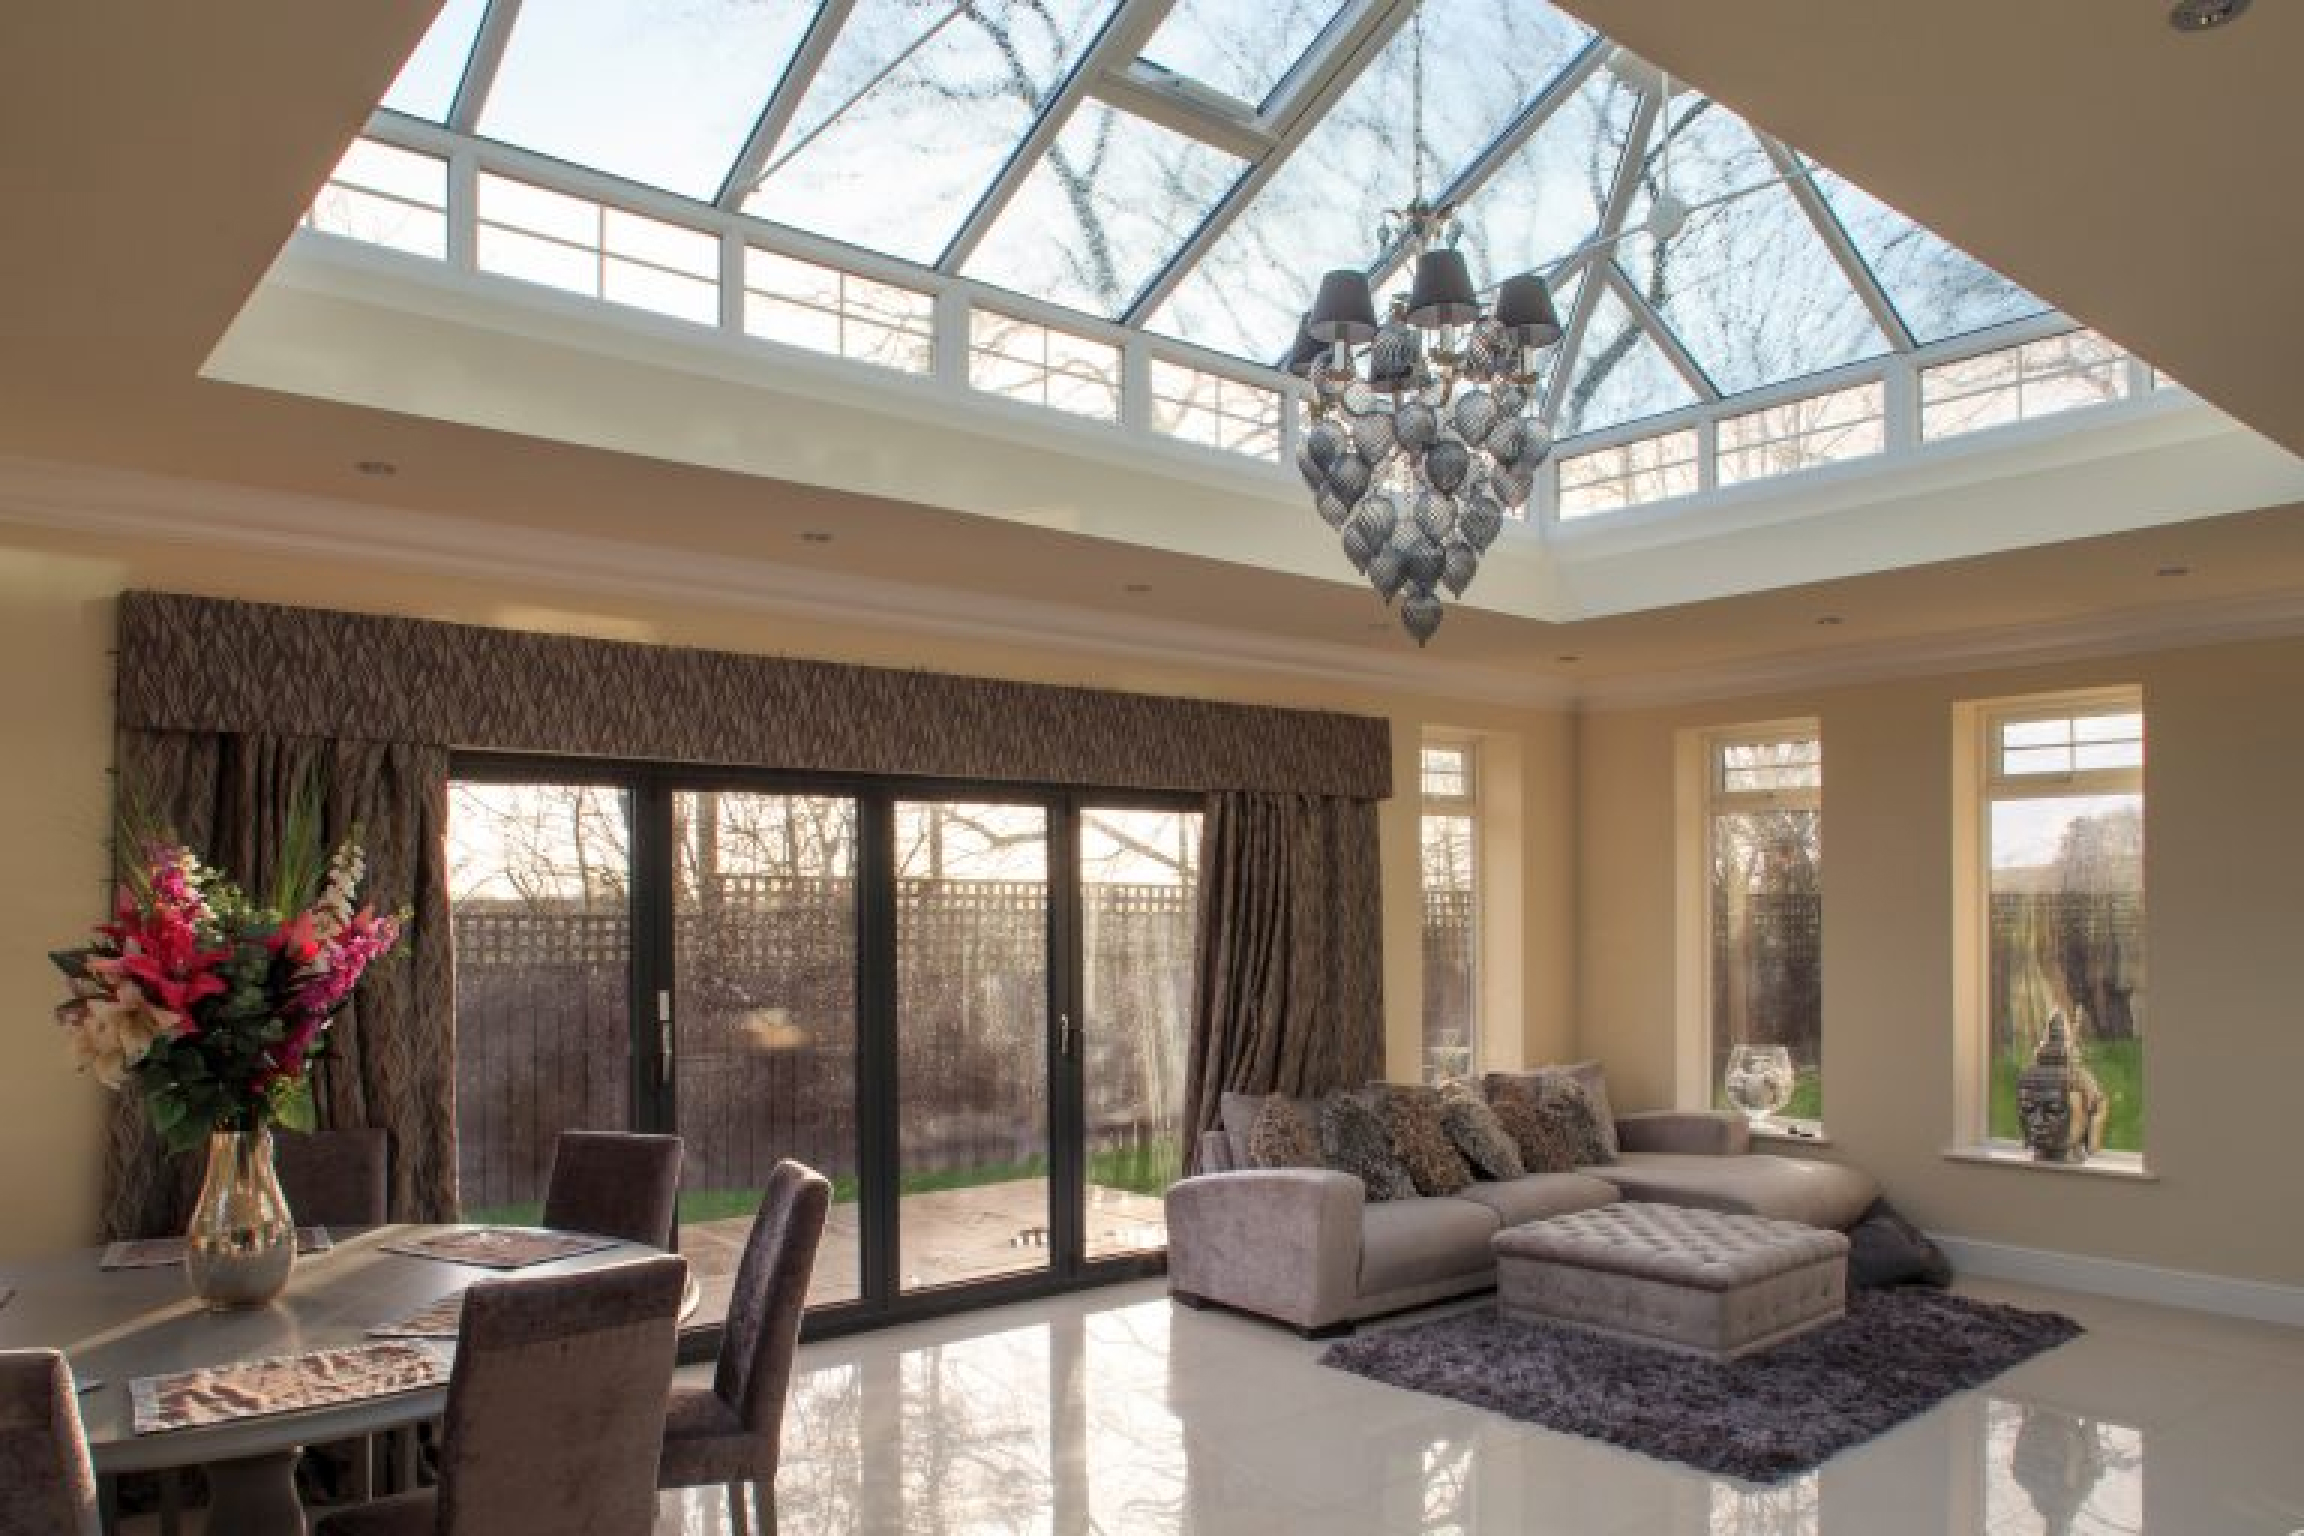 5 Double Glazing Products You Need to Install This Summer